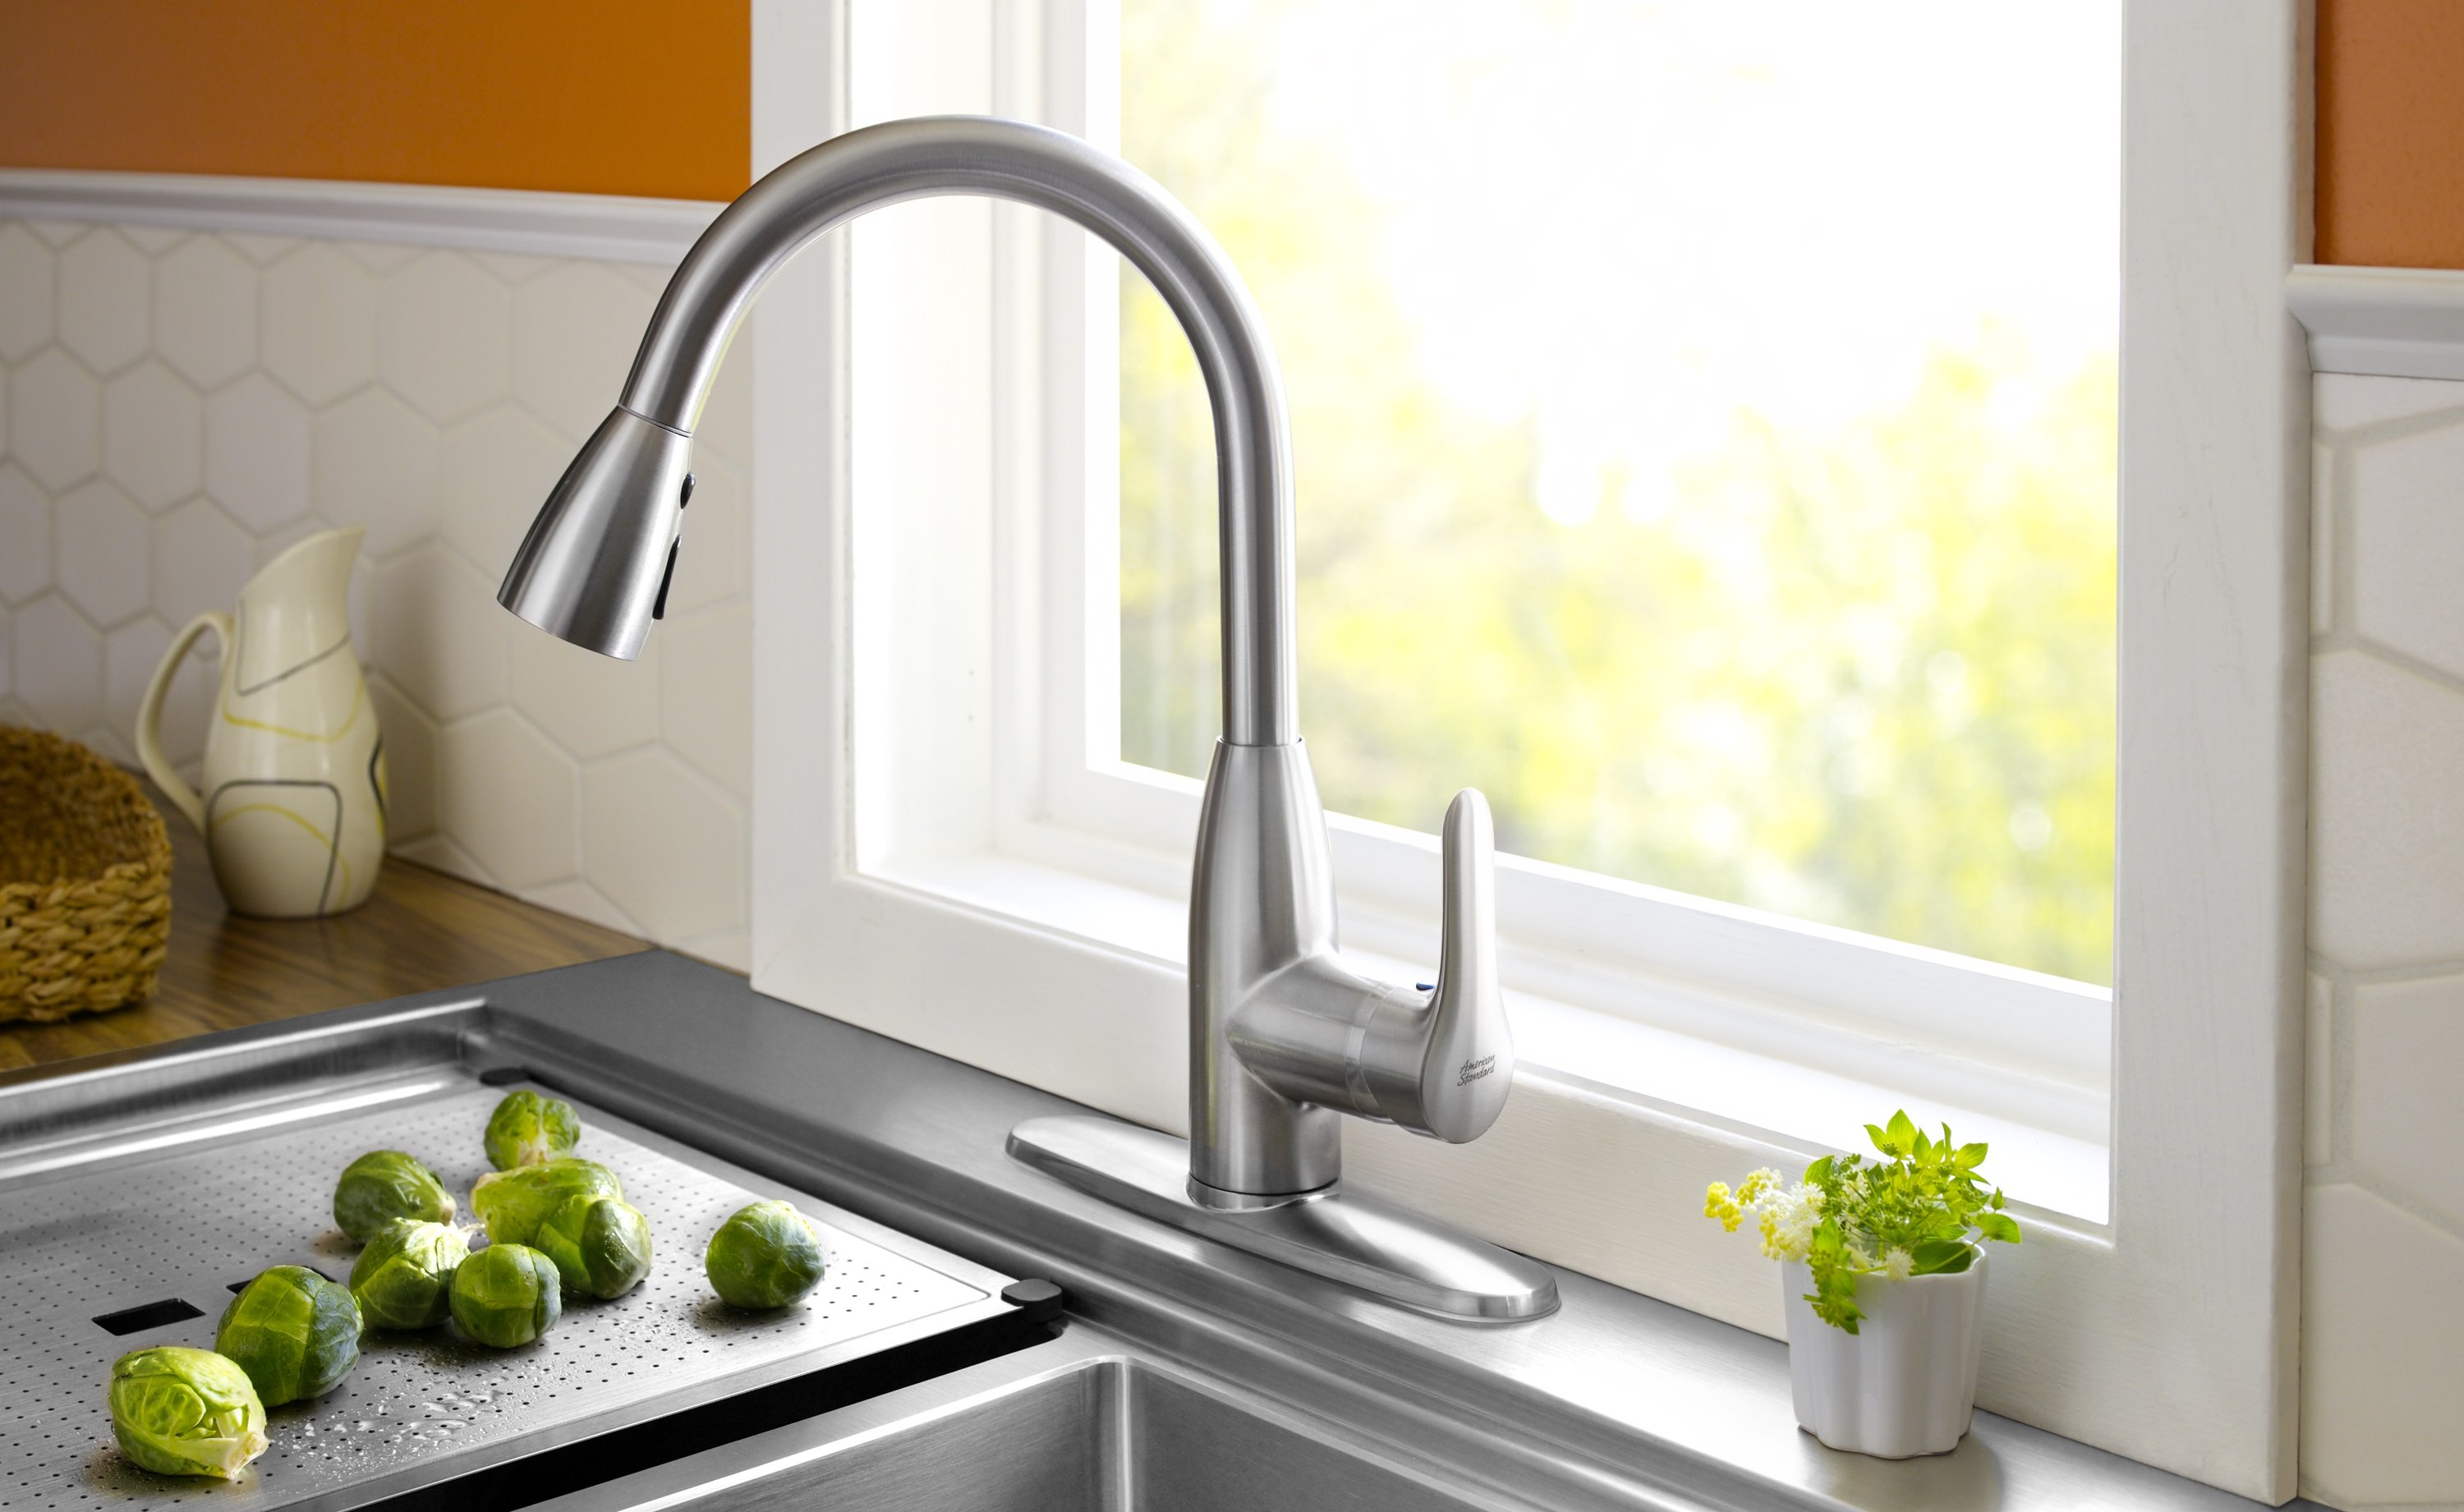 american standard 4175 300 075 colony soft pull down kitchen a stainless steel colony faucet with a kitchen sink